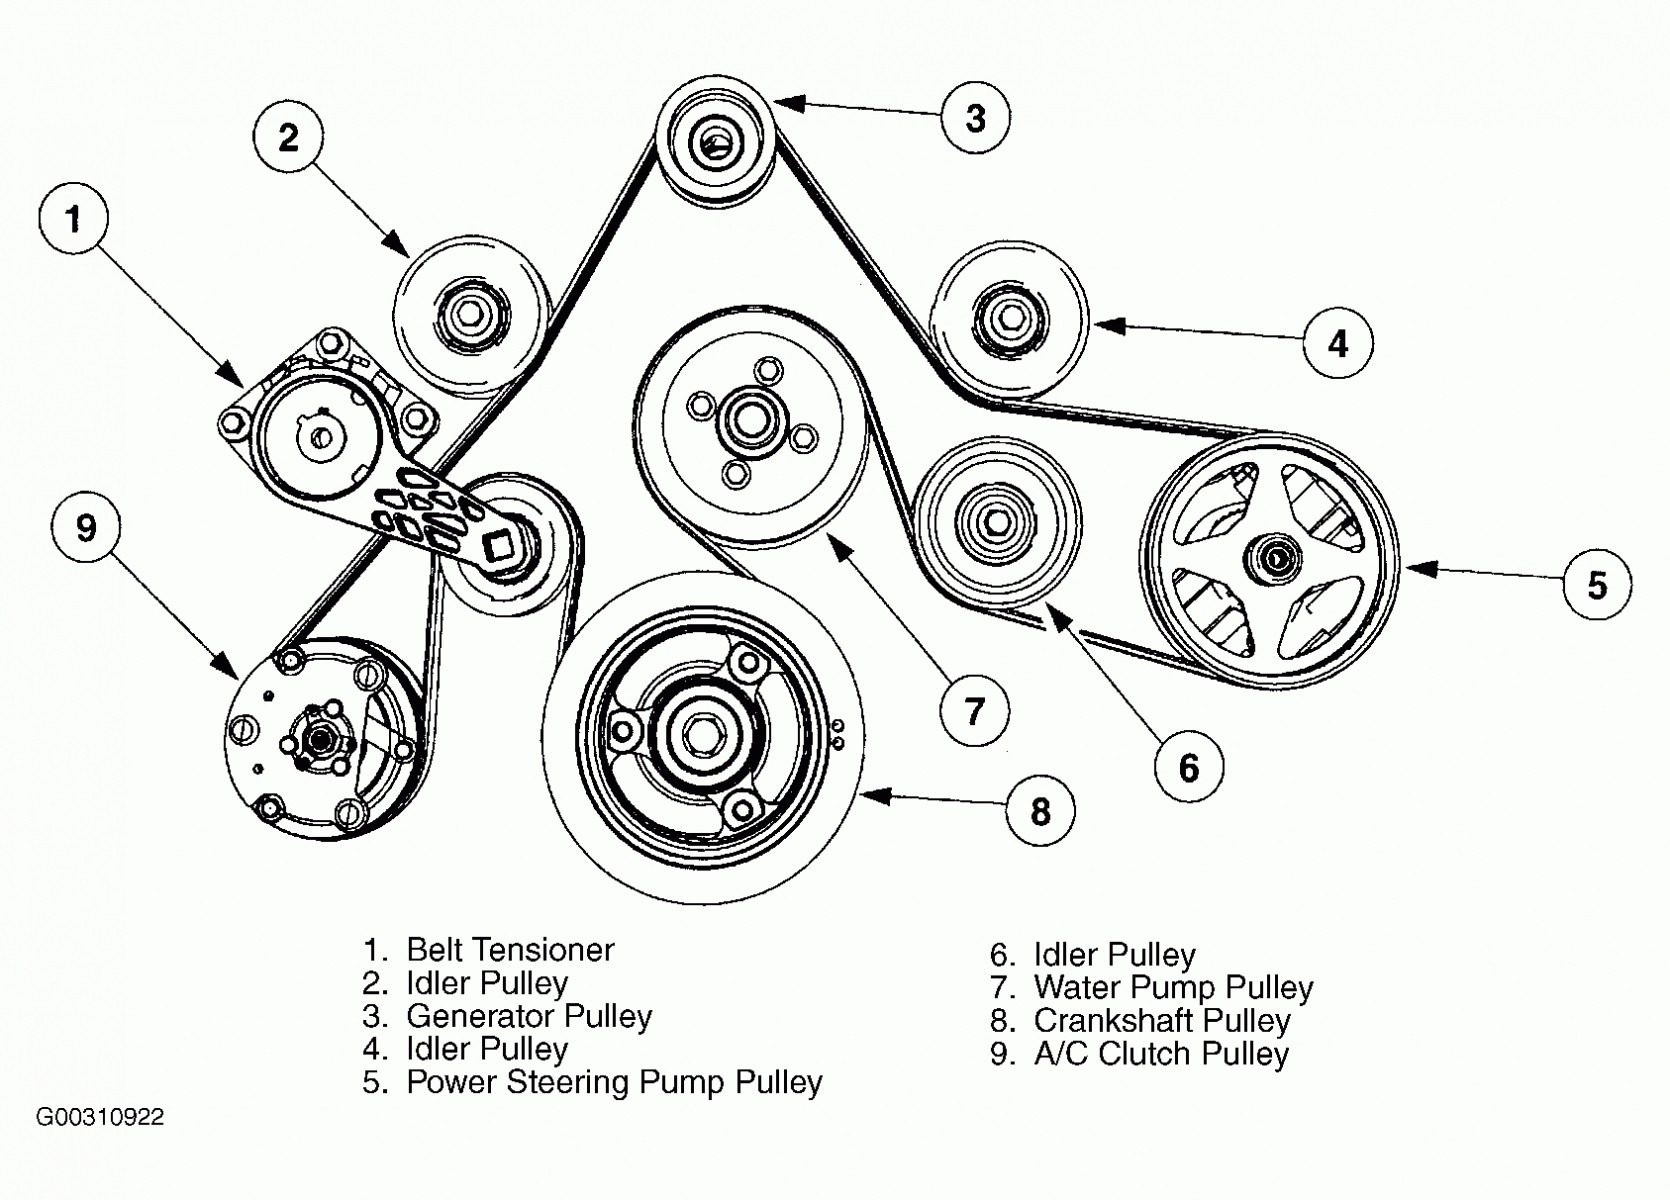 2007 ford taurus engine diagram 1999 mercury cougar radio wiring fuse 2003 f 150 4 2 best library belt 6 diagrams instructions